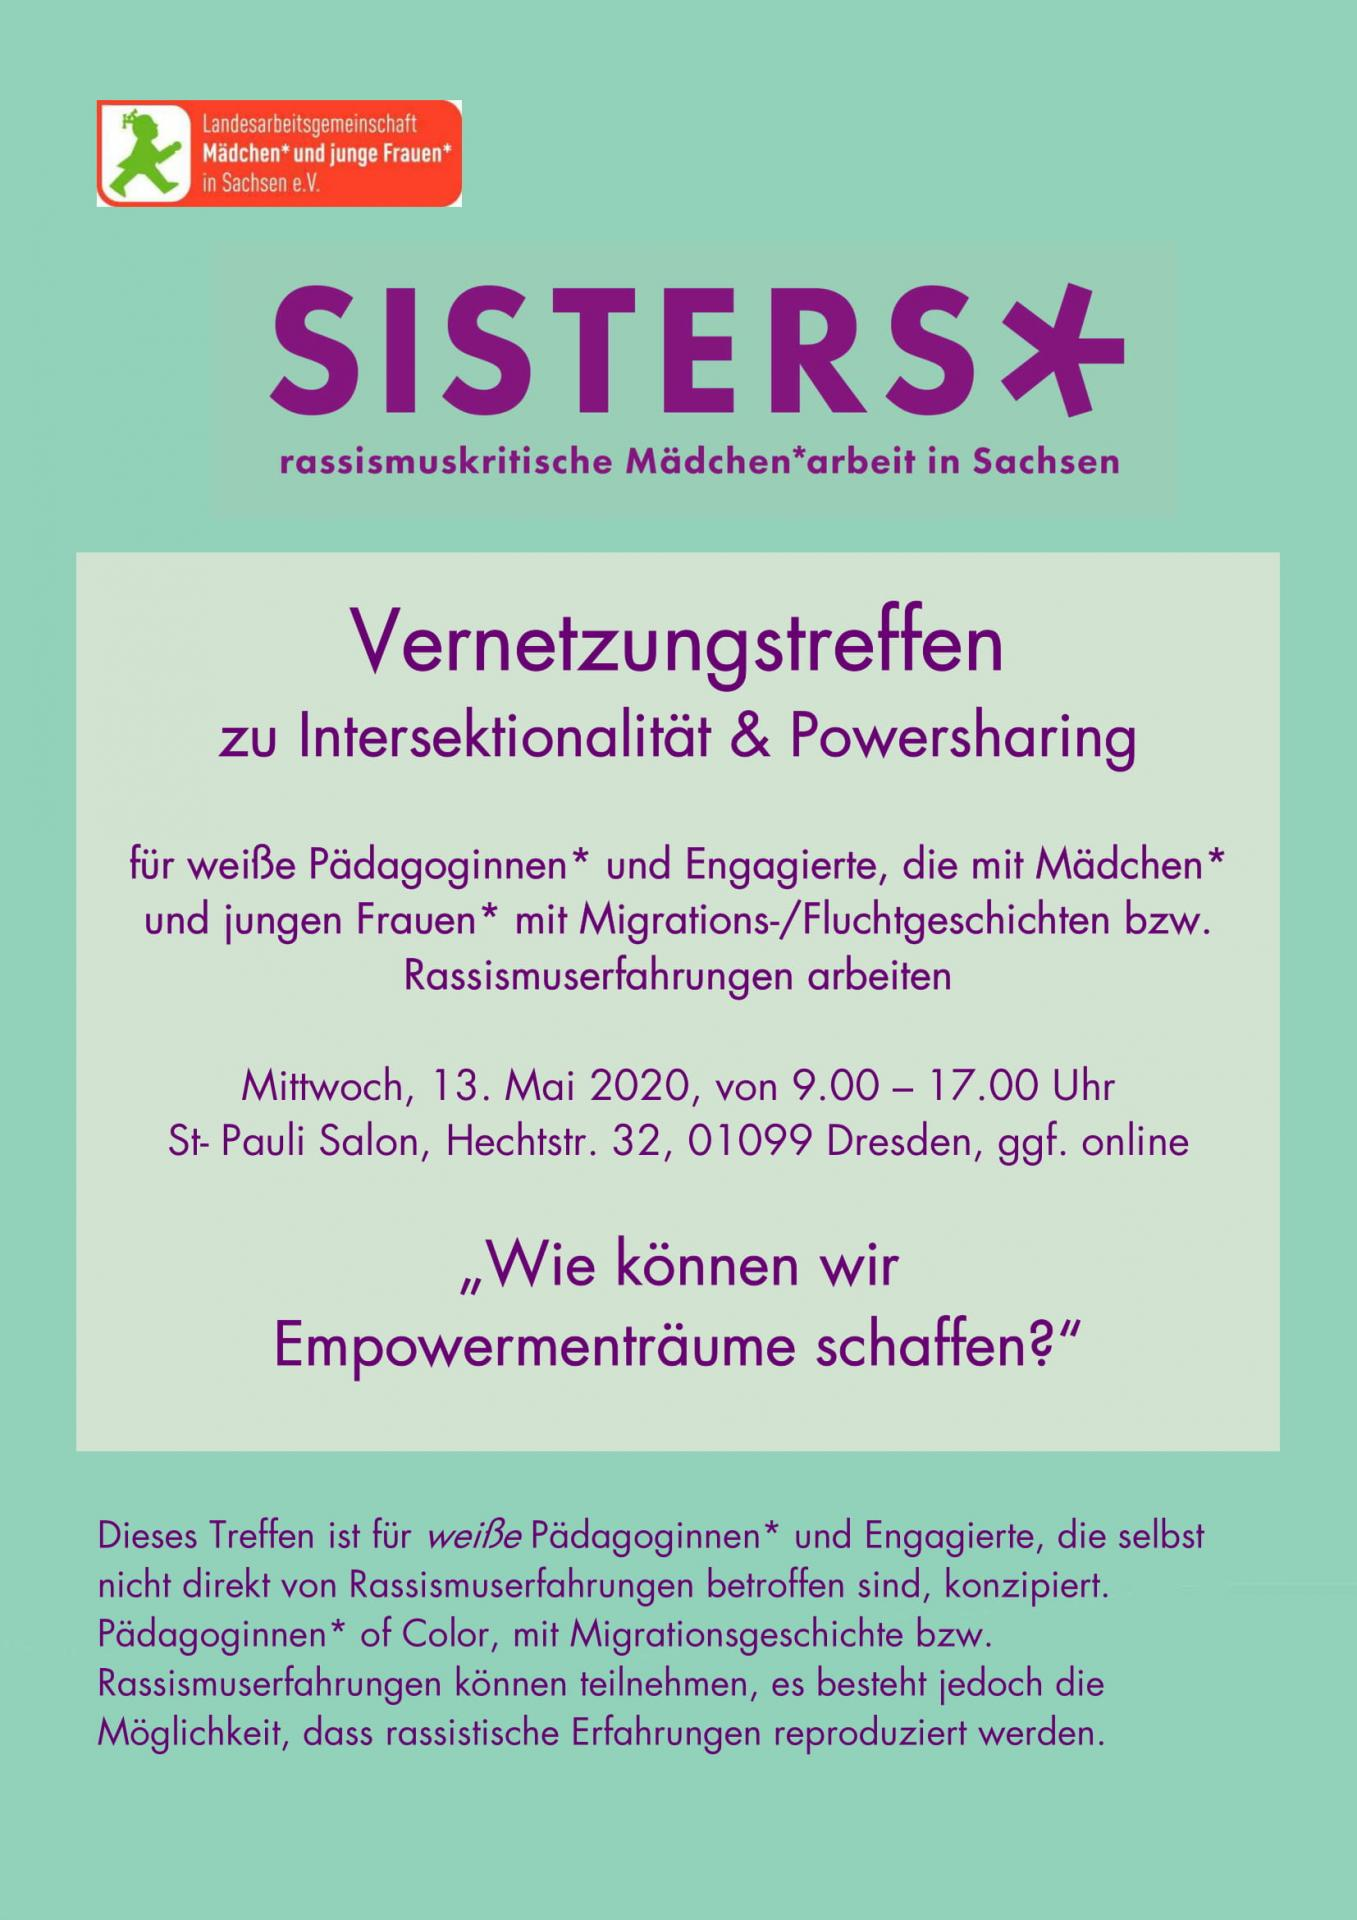 13.05. SISTERS* Flyer 1